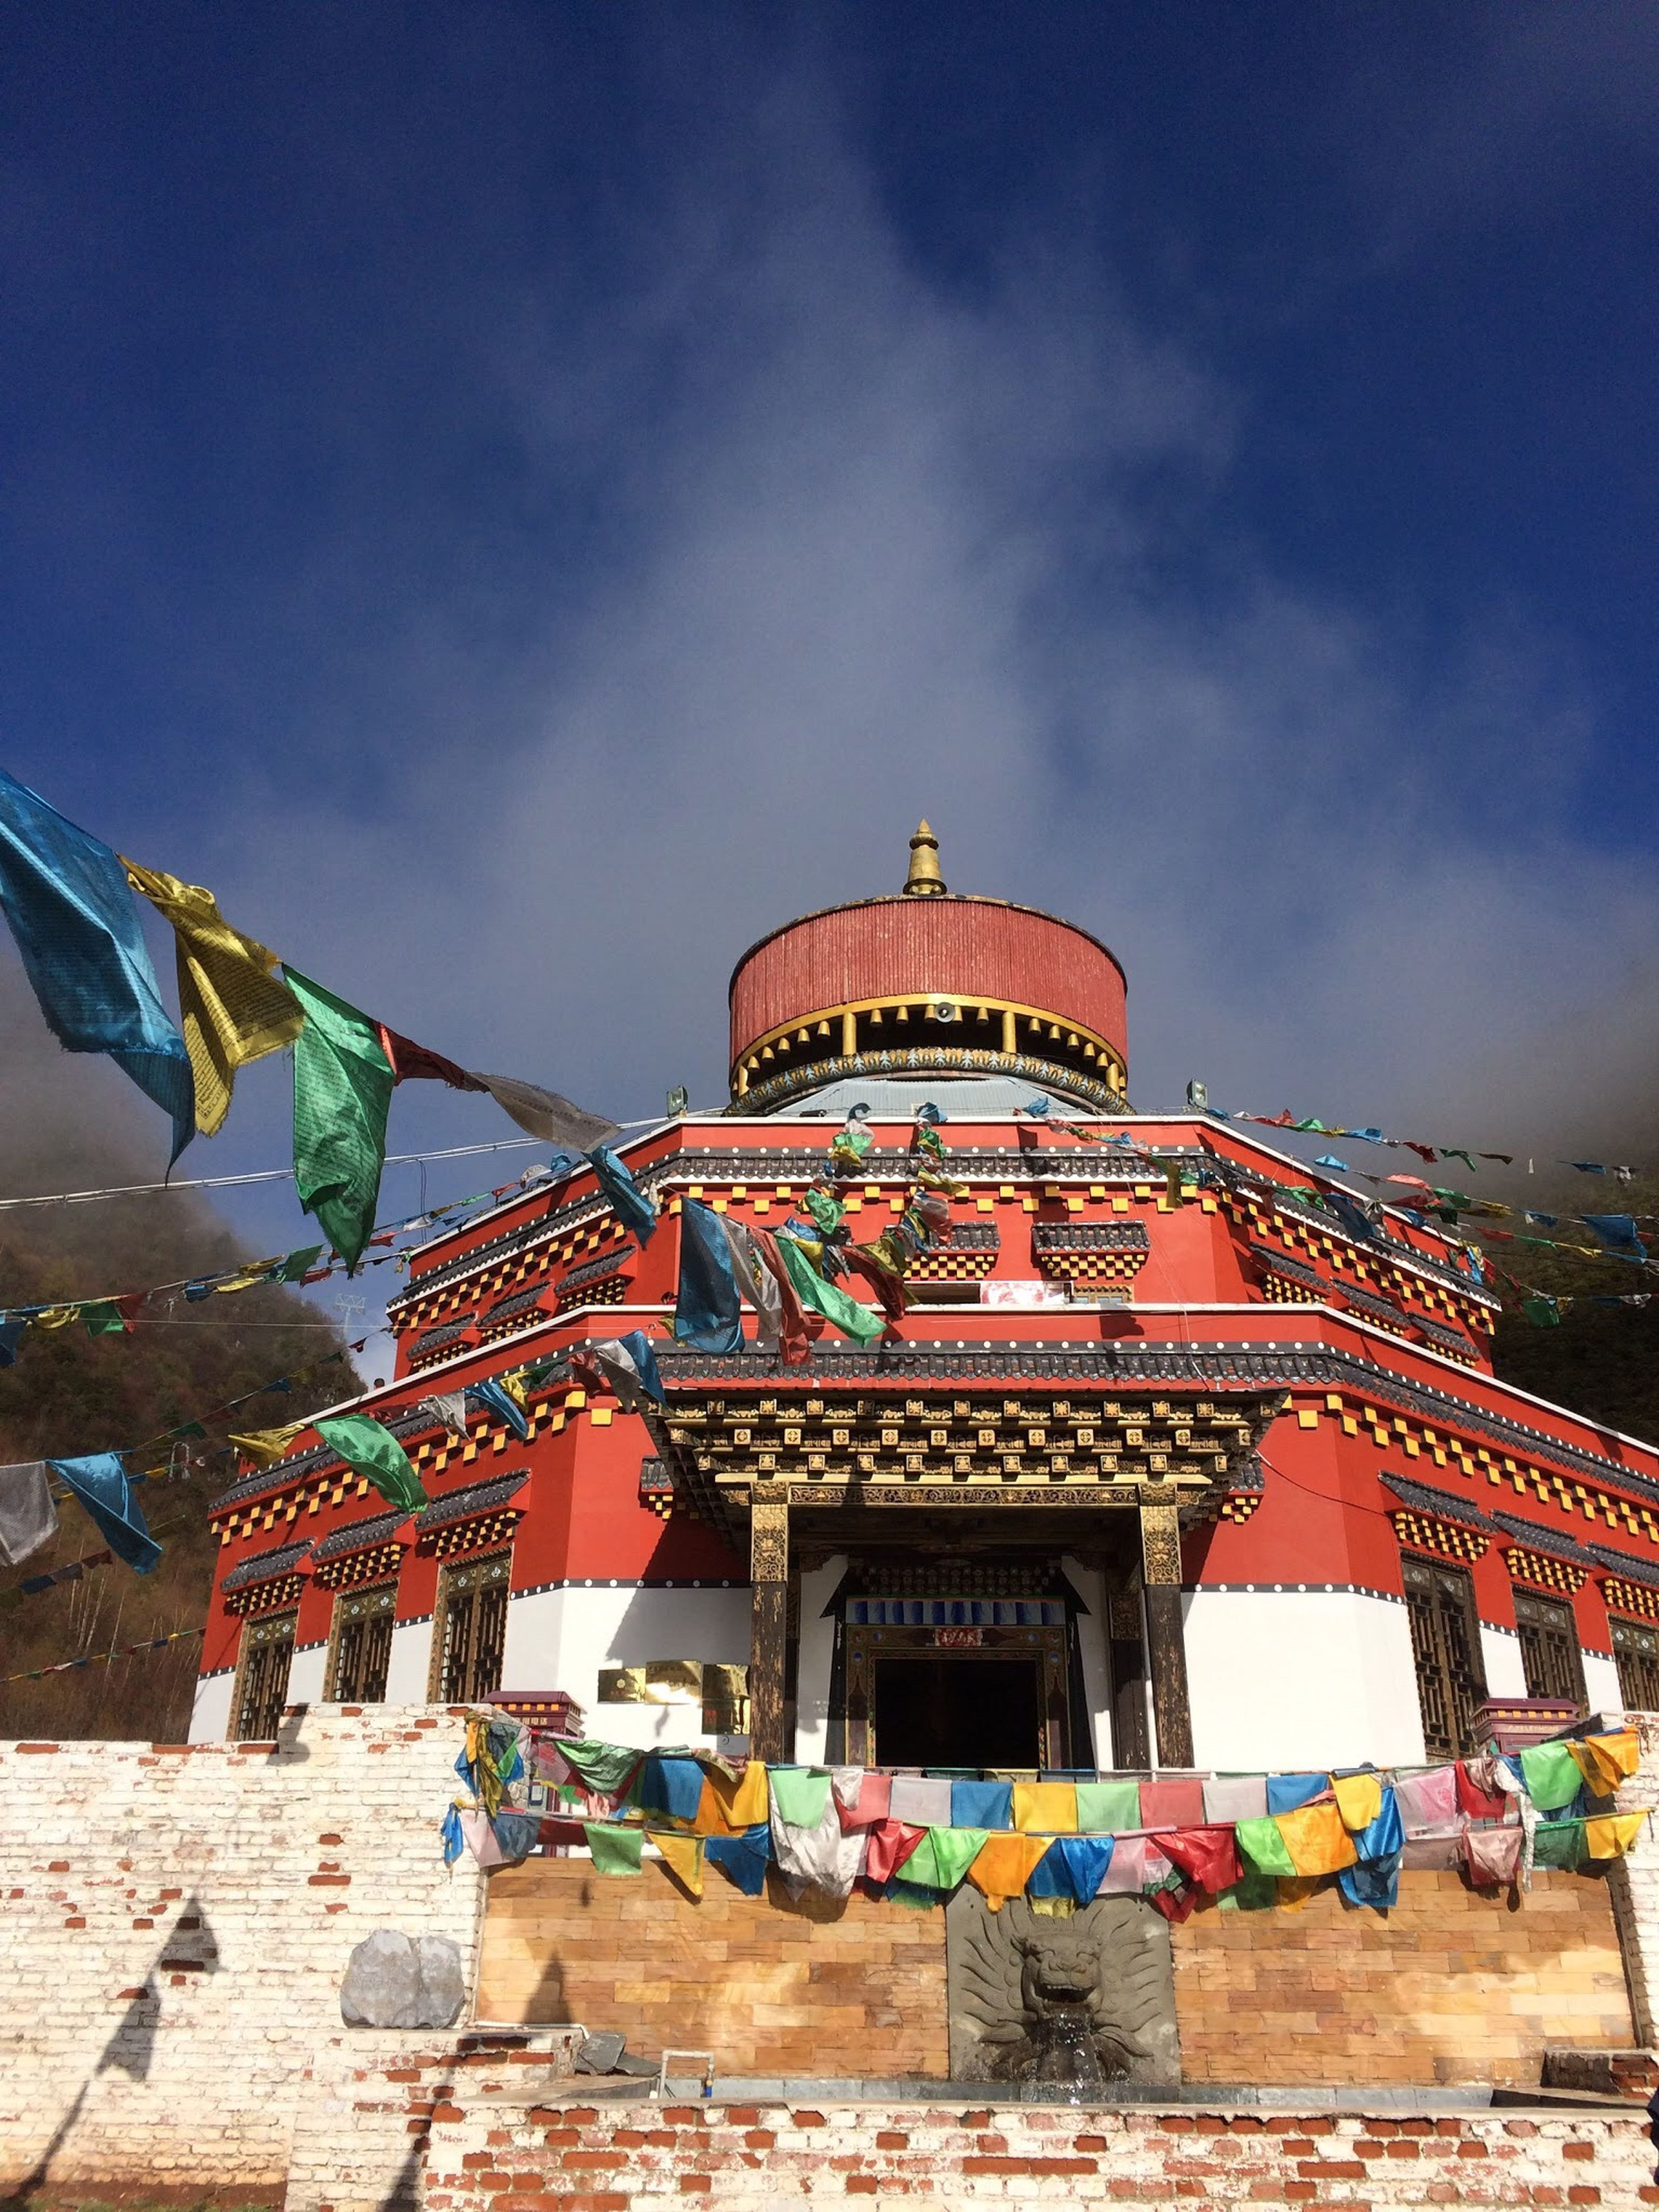 architecture, built structure, building exterior, sky, place of worship, religion, spirituality, cloud - sky, blue, roof, cloud, low angle view, temple - building, multi colored, travel destinations, outdoors, cultures, tradition, dome, famous place